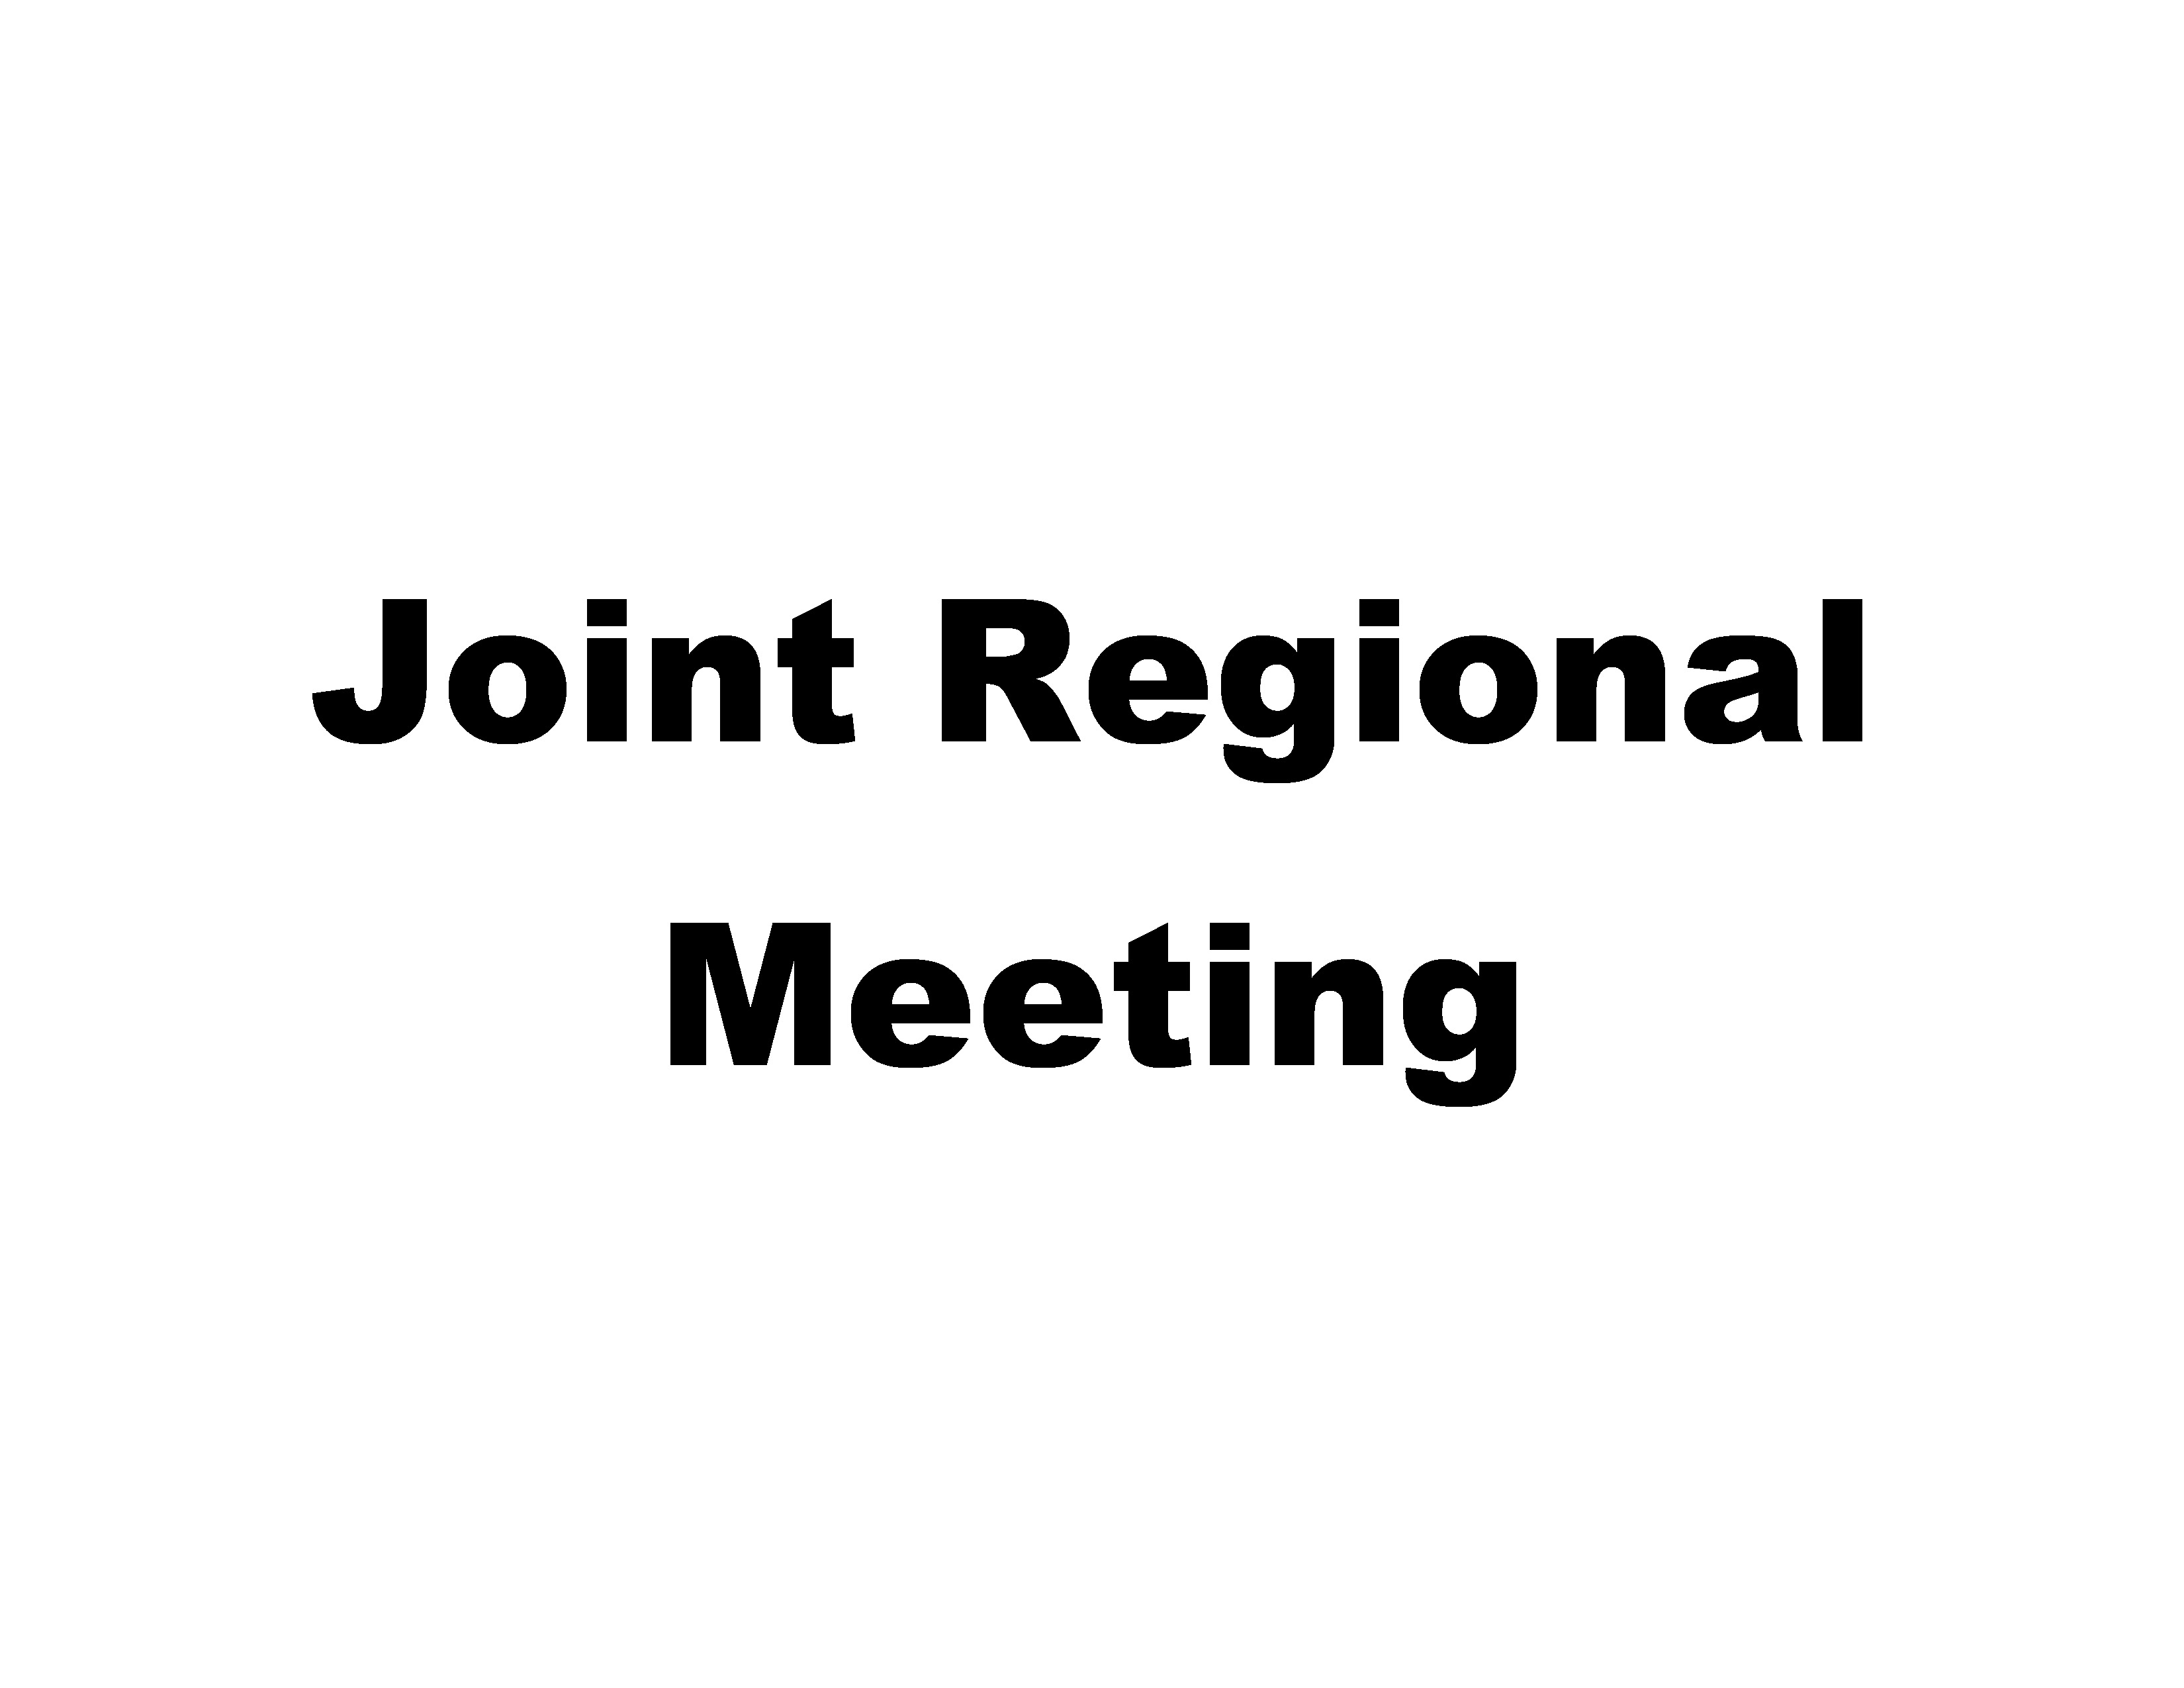 Joint Regional Meeting